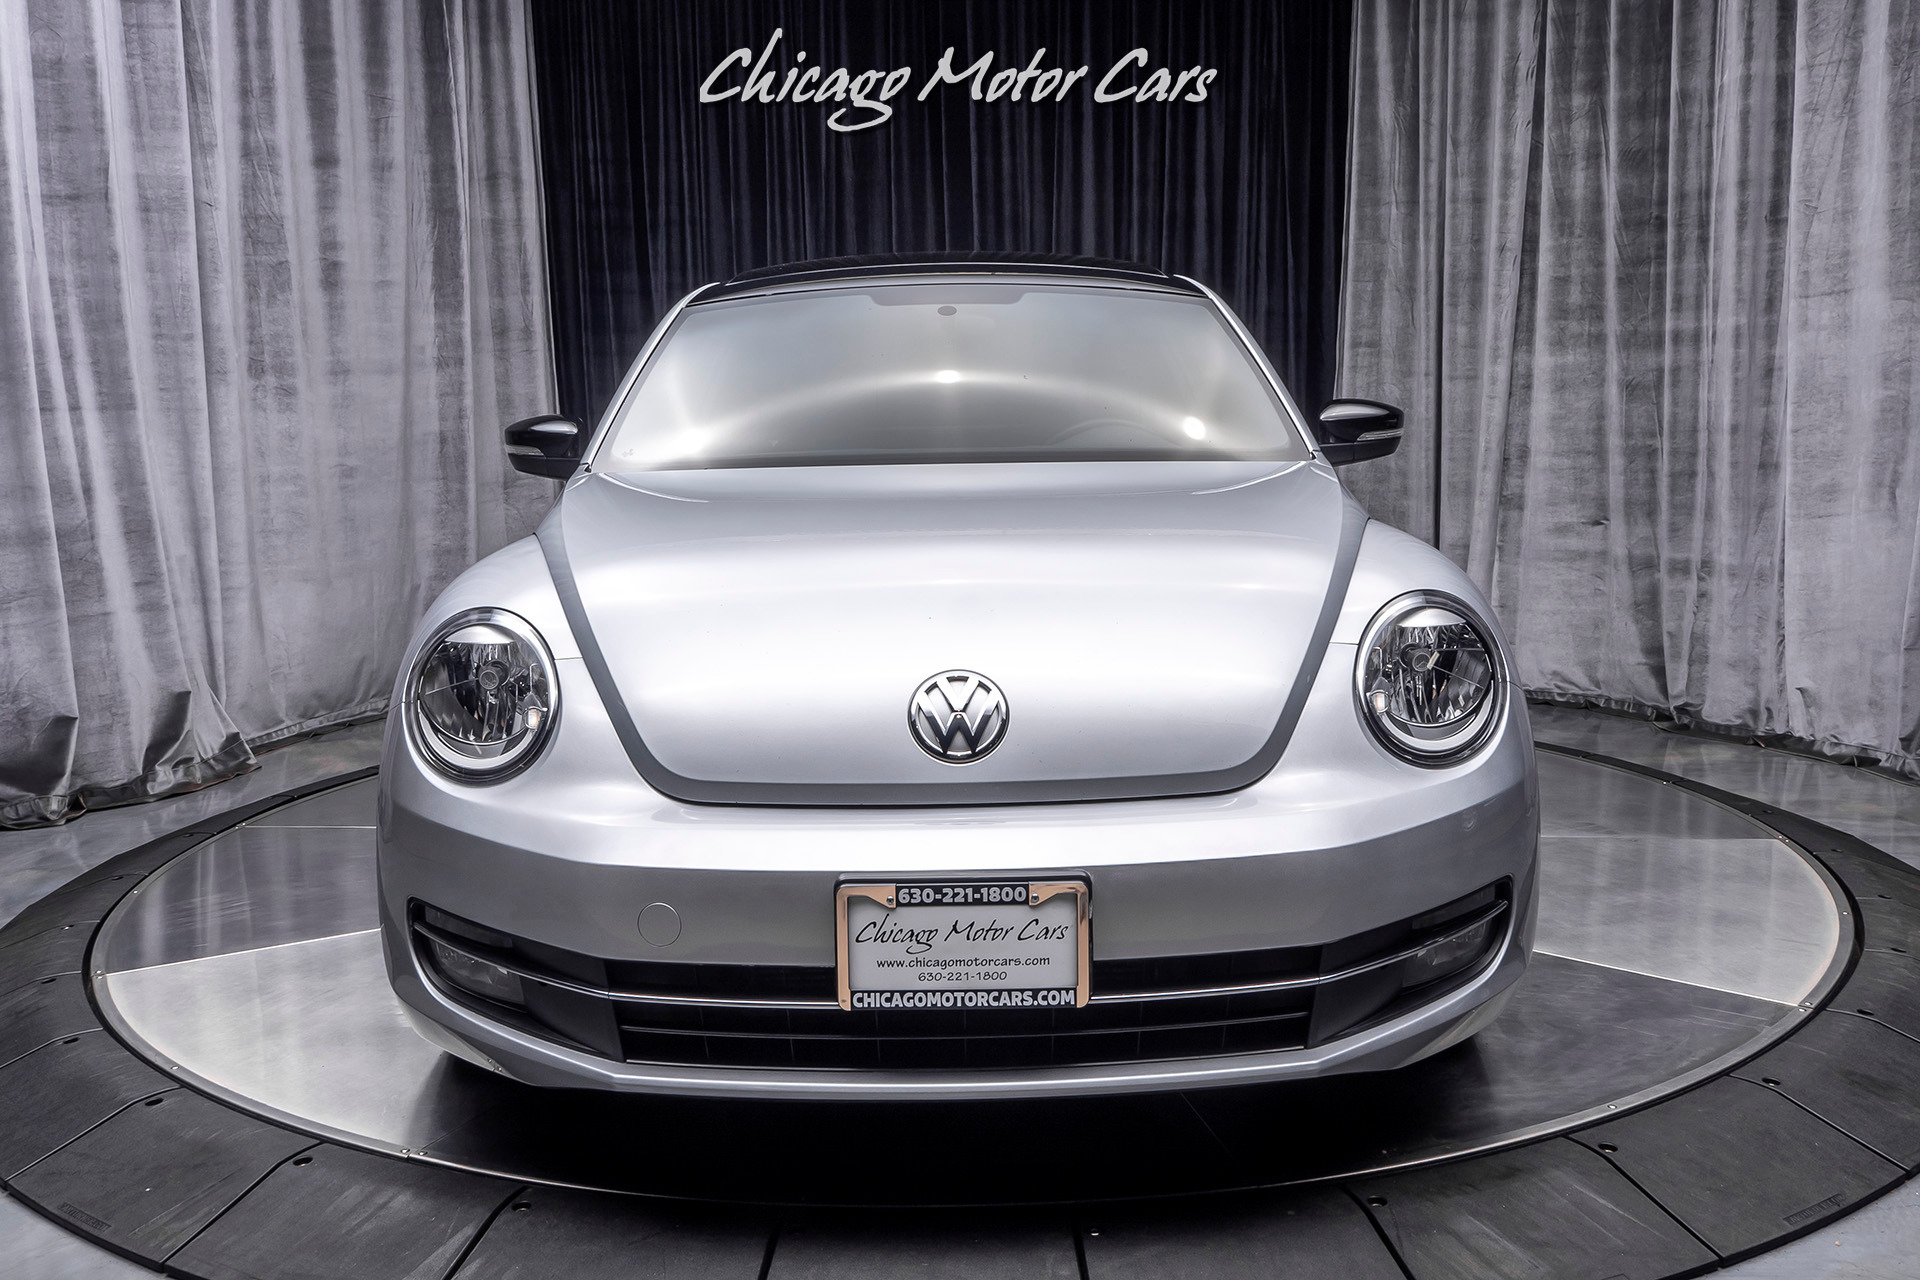 Used-2012-Volkswagen-Beetle-Turbo-Coupe